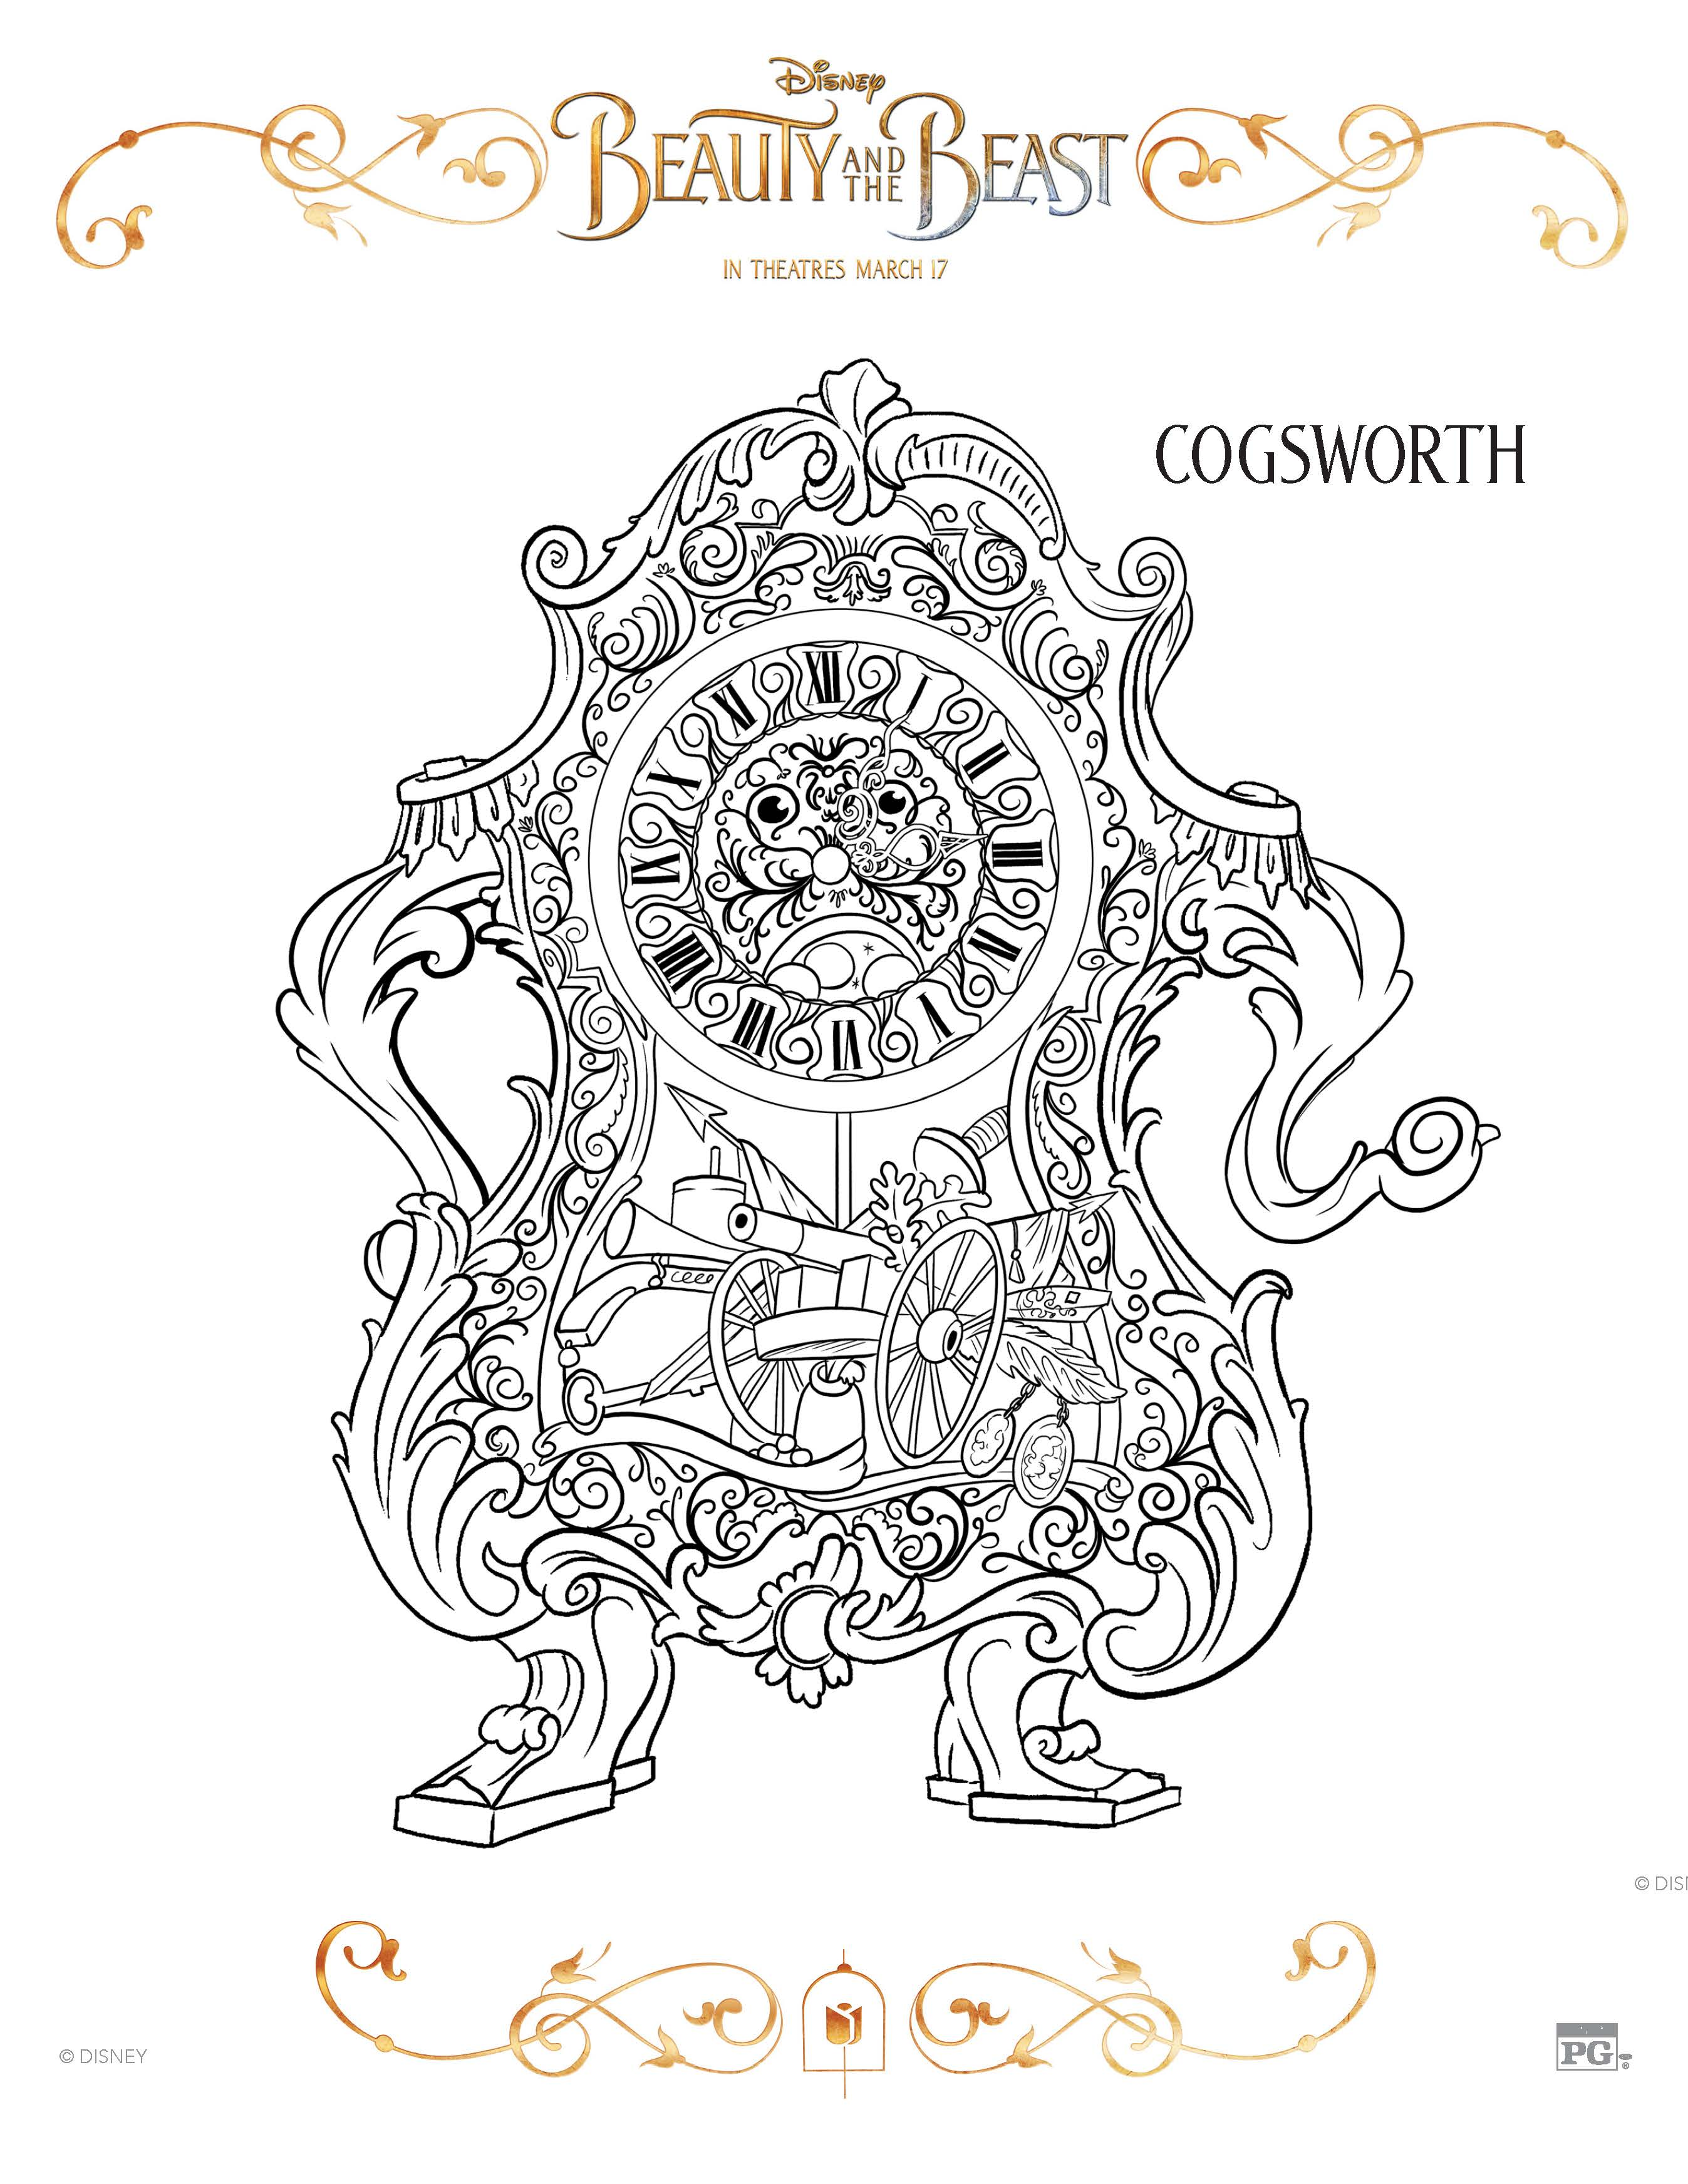 graphic regarding Beauty and the Beast Printable Coloring Pages titled 10 Attractiveness and the Beast Cost-free Printable Coloring Internet pages